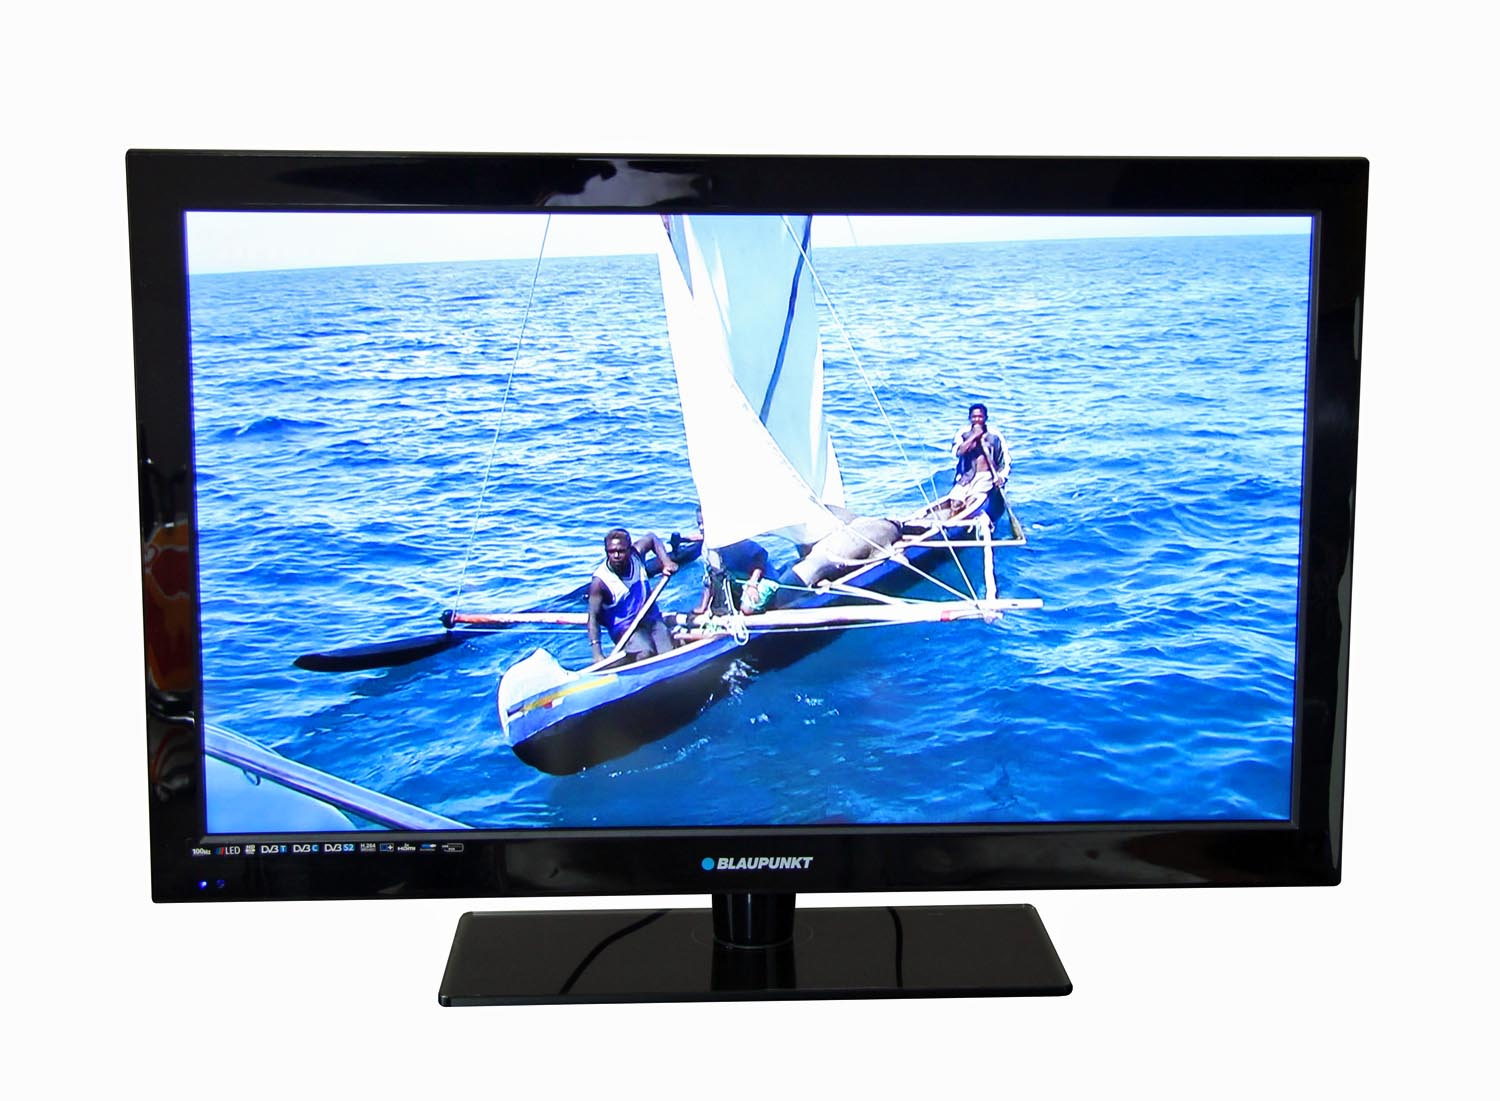 blaupunkt b32p189tcsfhd 100 led fernseher 32 zoll 81cm full hd tv hdmi ebay. Black Bedroom Furniture Sets. Home Design Ideas